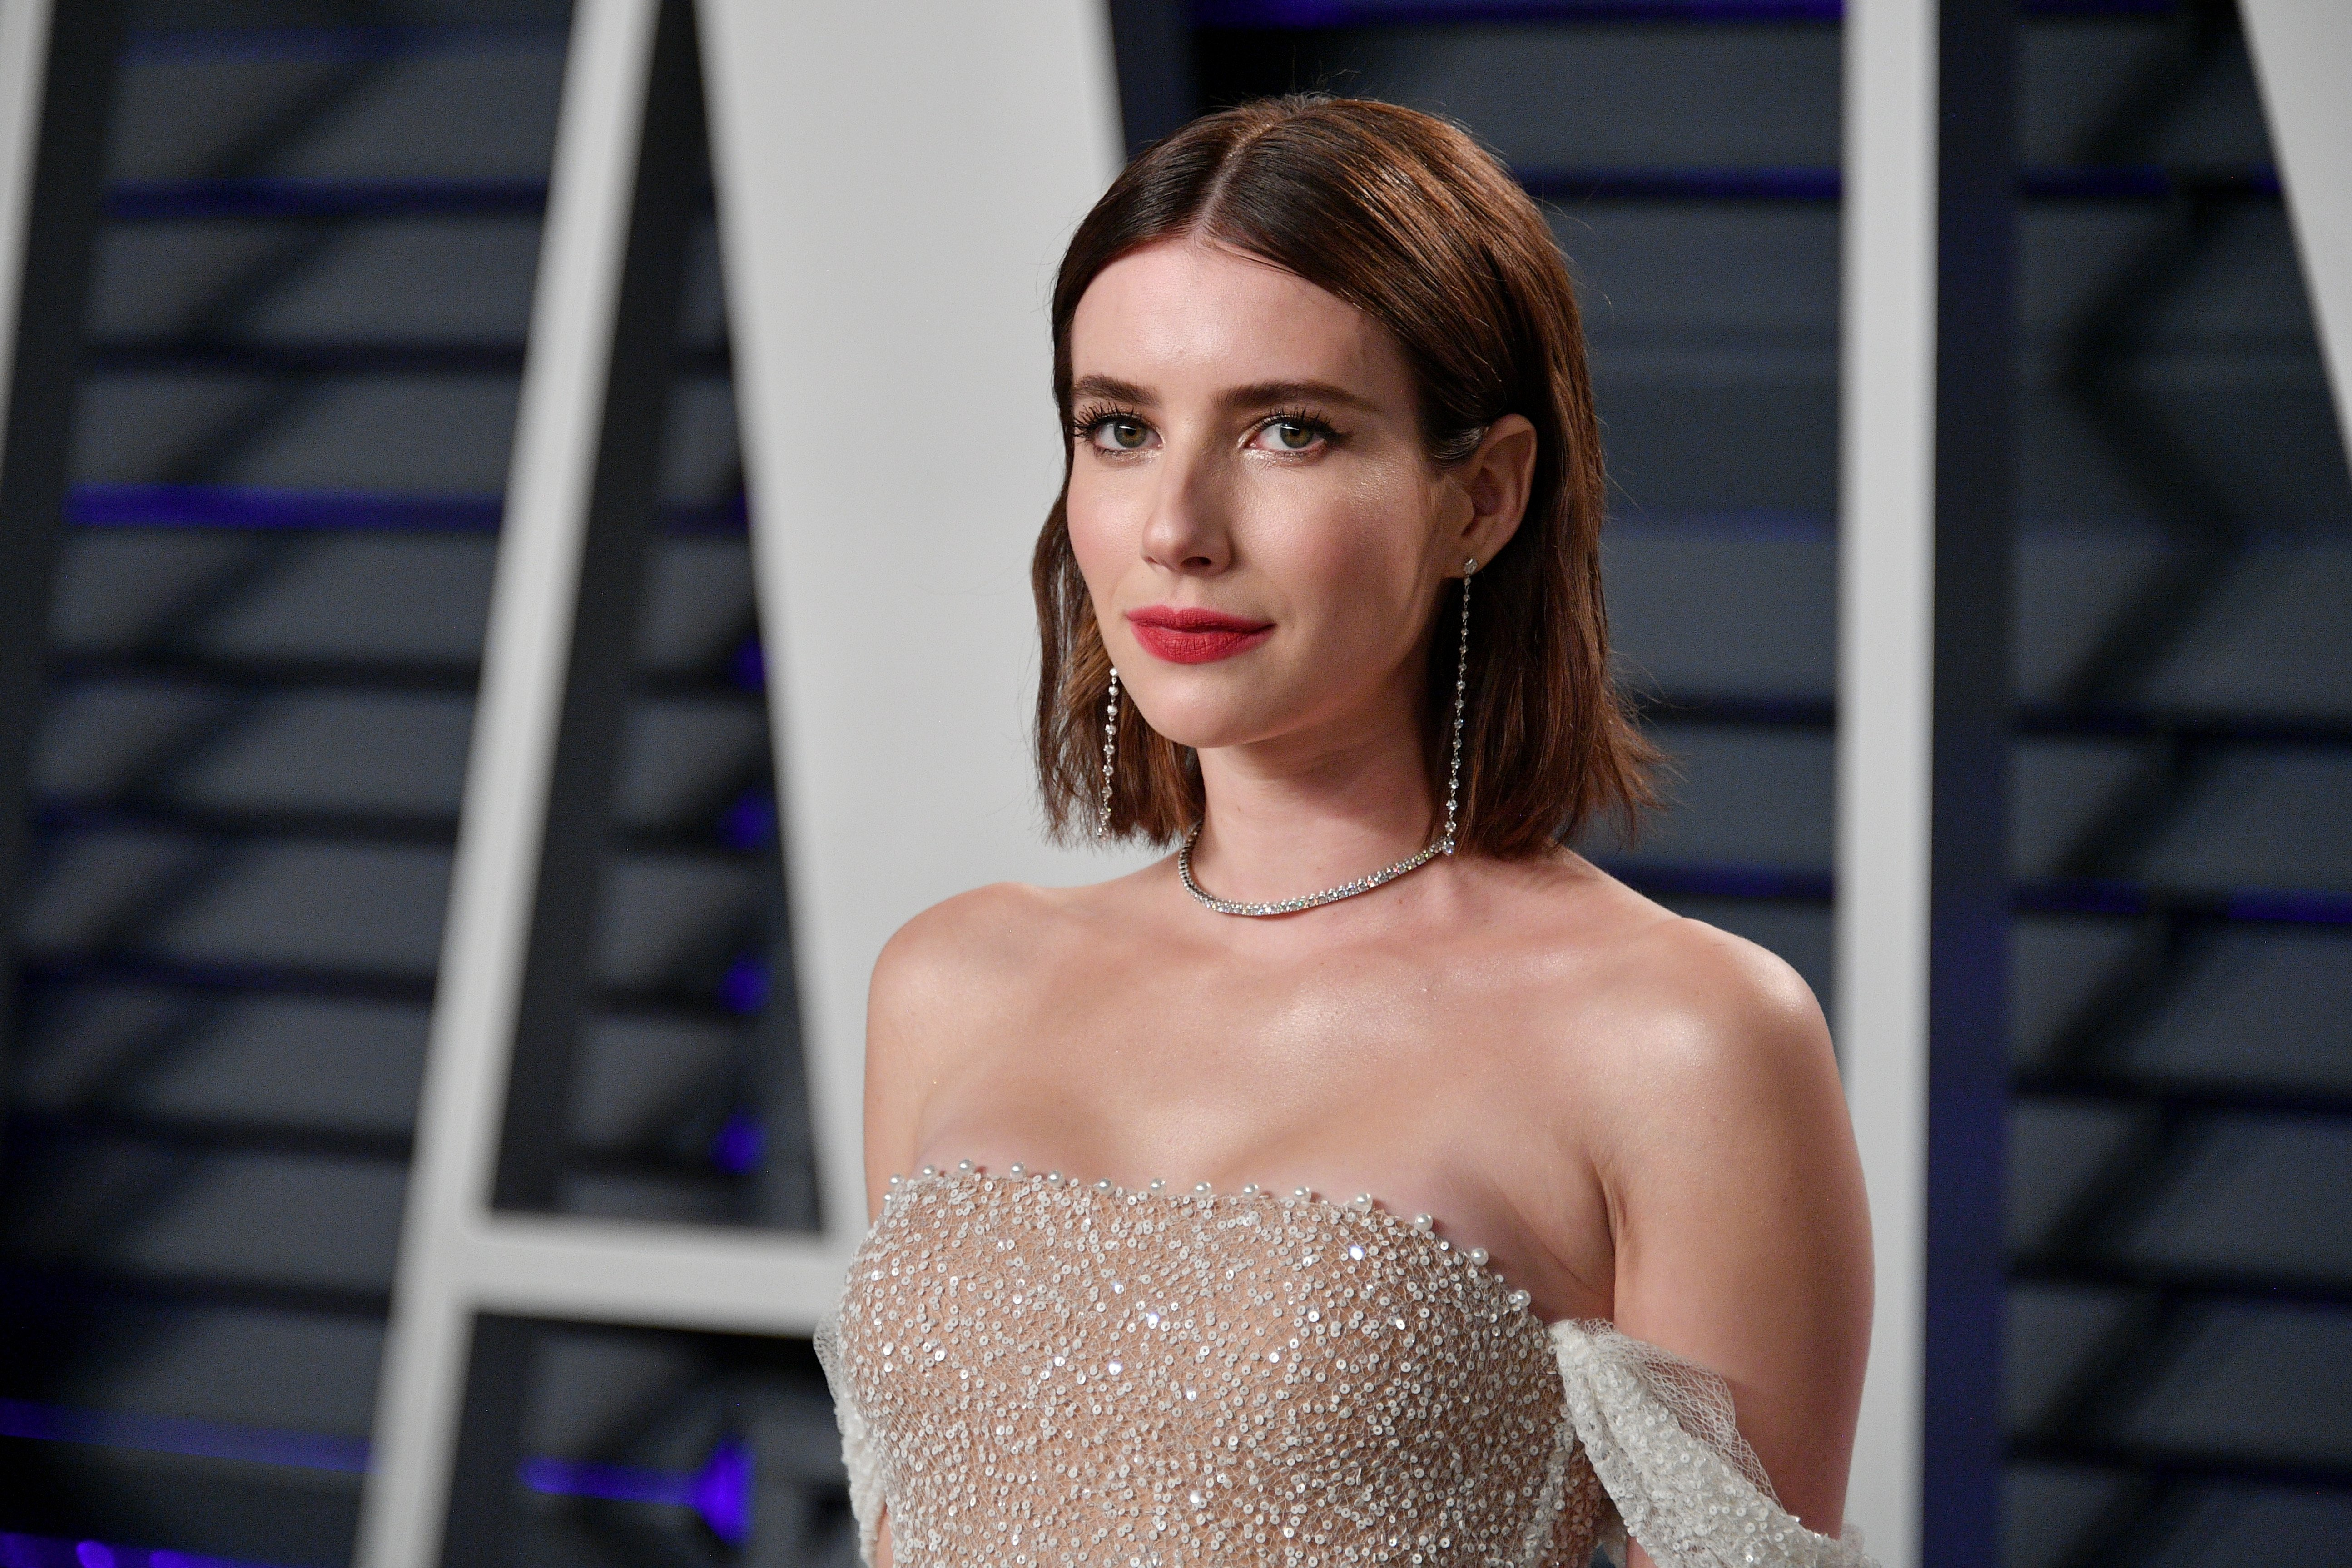 Emma Roberts attends the 2019 Vanity Fair Oscar Party on February 24, 2019, in Beverly Hills, California. | Source: Getty Images.